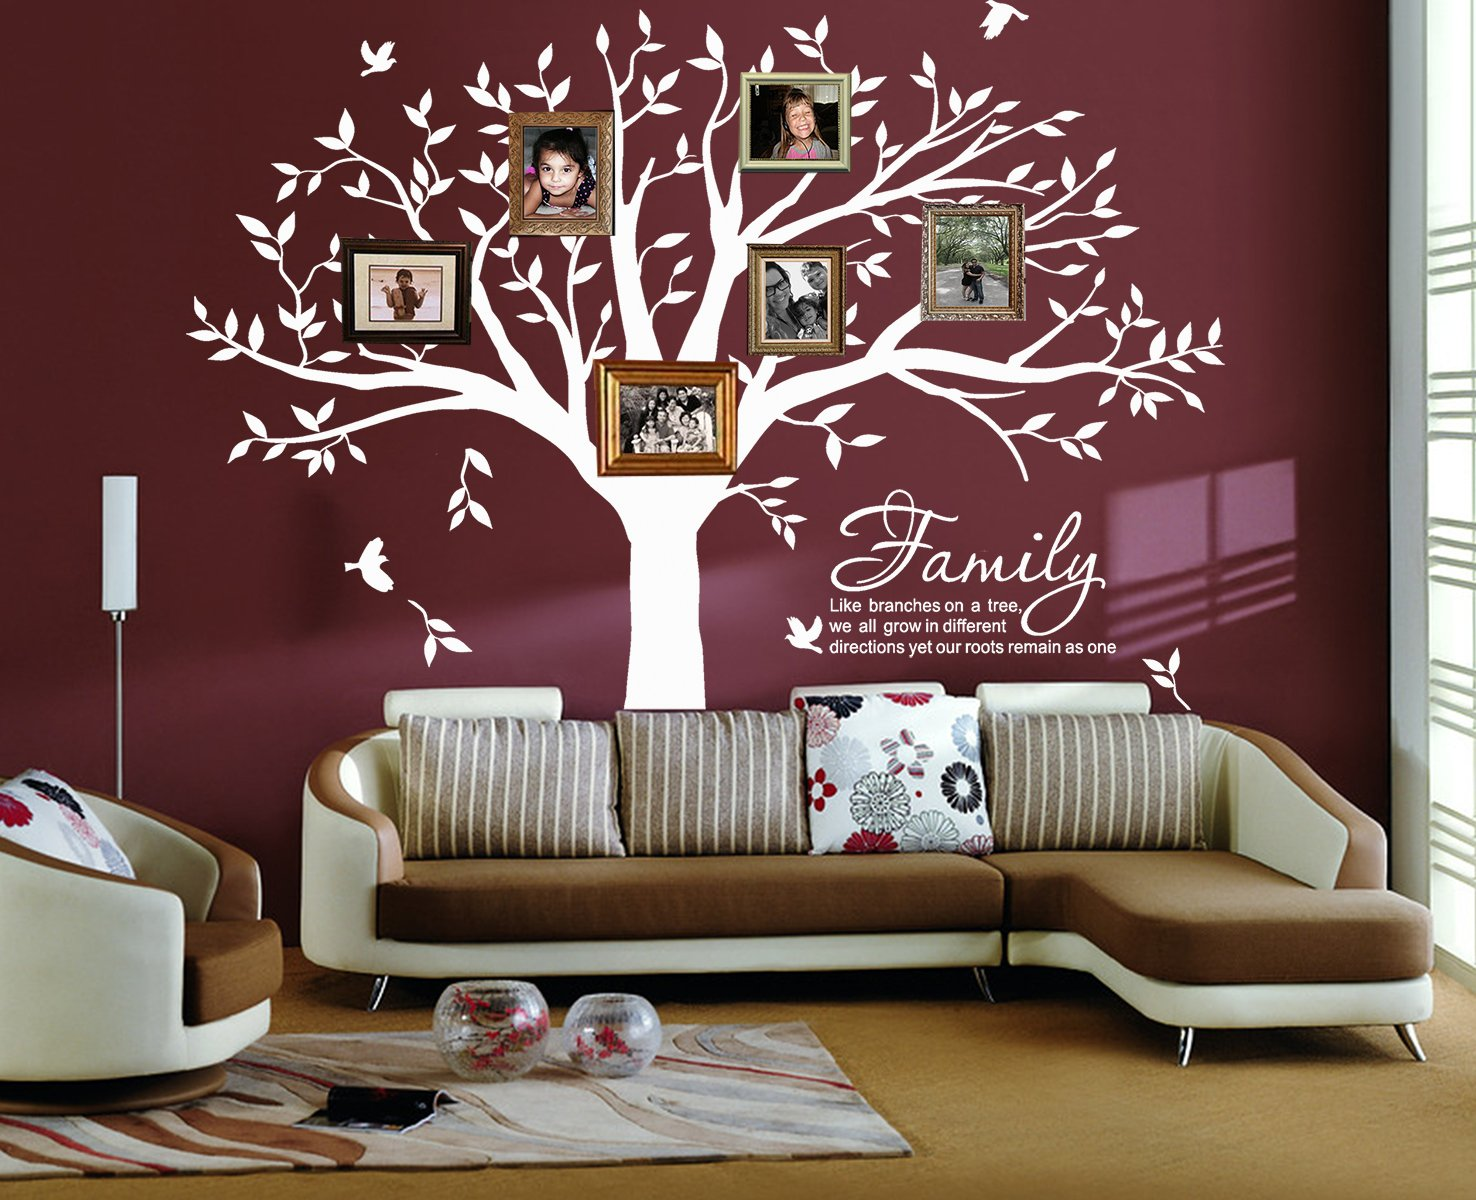 LSKOO Large Family Tree Wall Decal Family Like Branches on a Tree Wall Decals Wall Sticks Wall Decorations for Living Room (White)